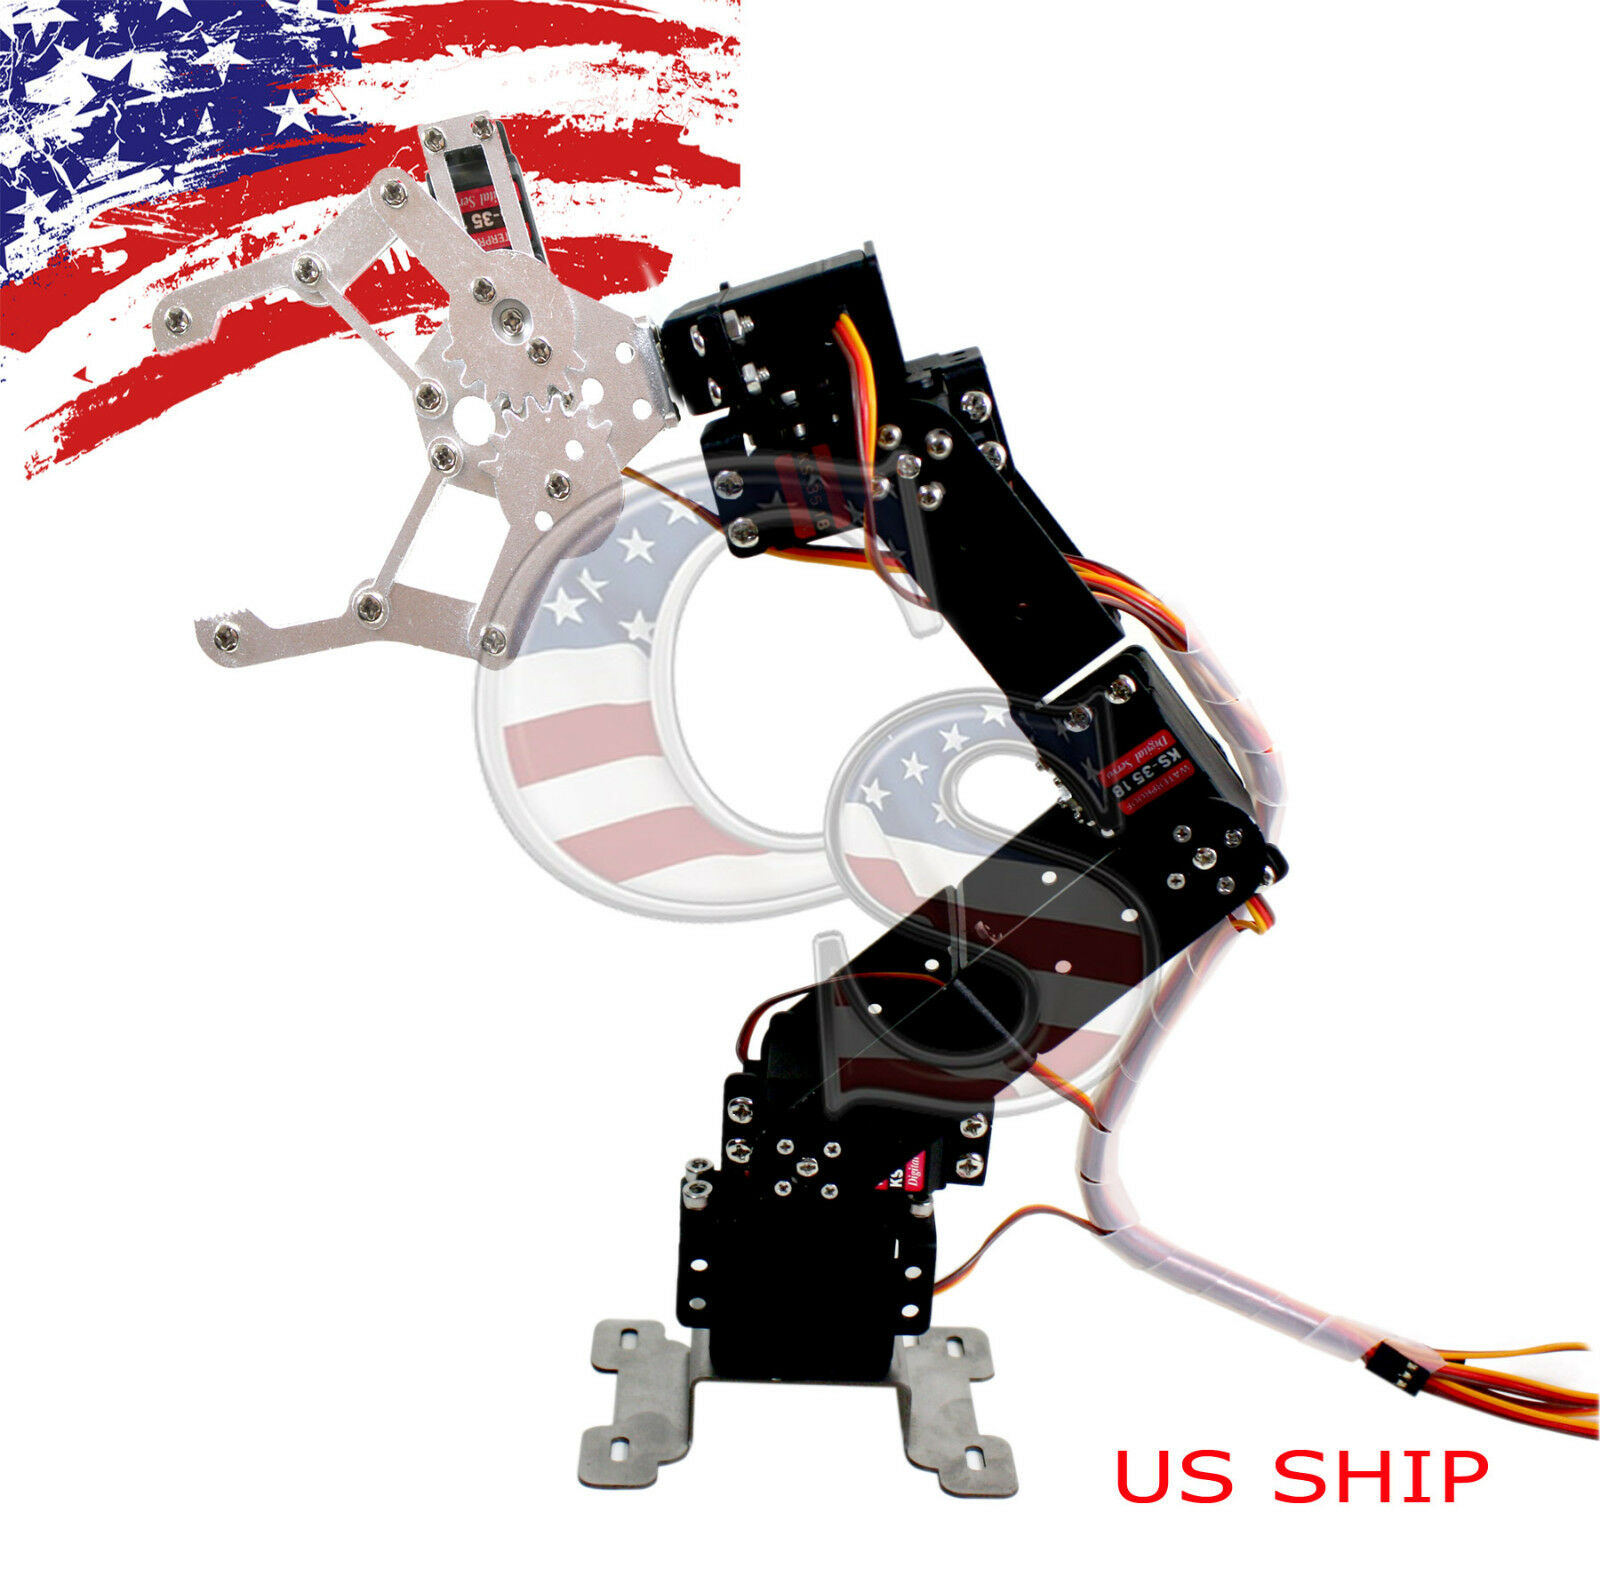 R4 6axis fully assembled mechanical robotic arm clamp claw for Robotic motors or special motors